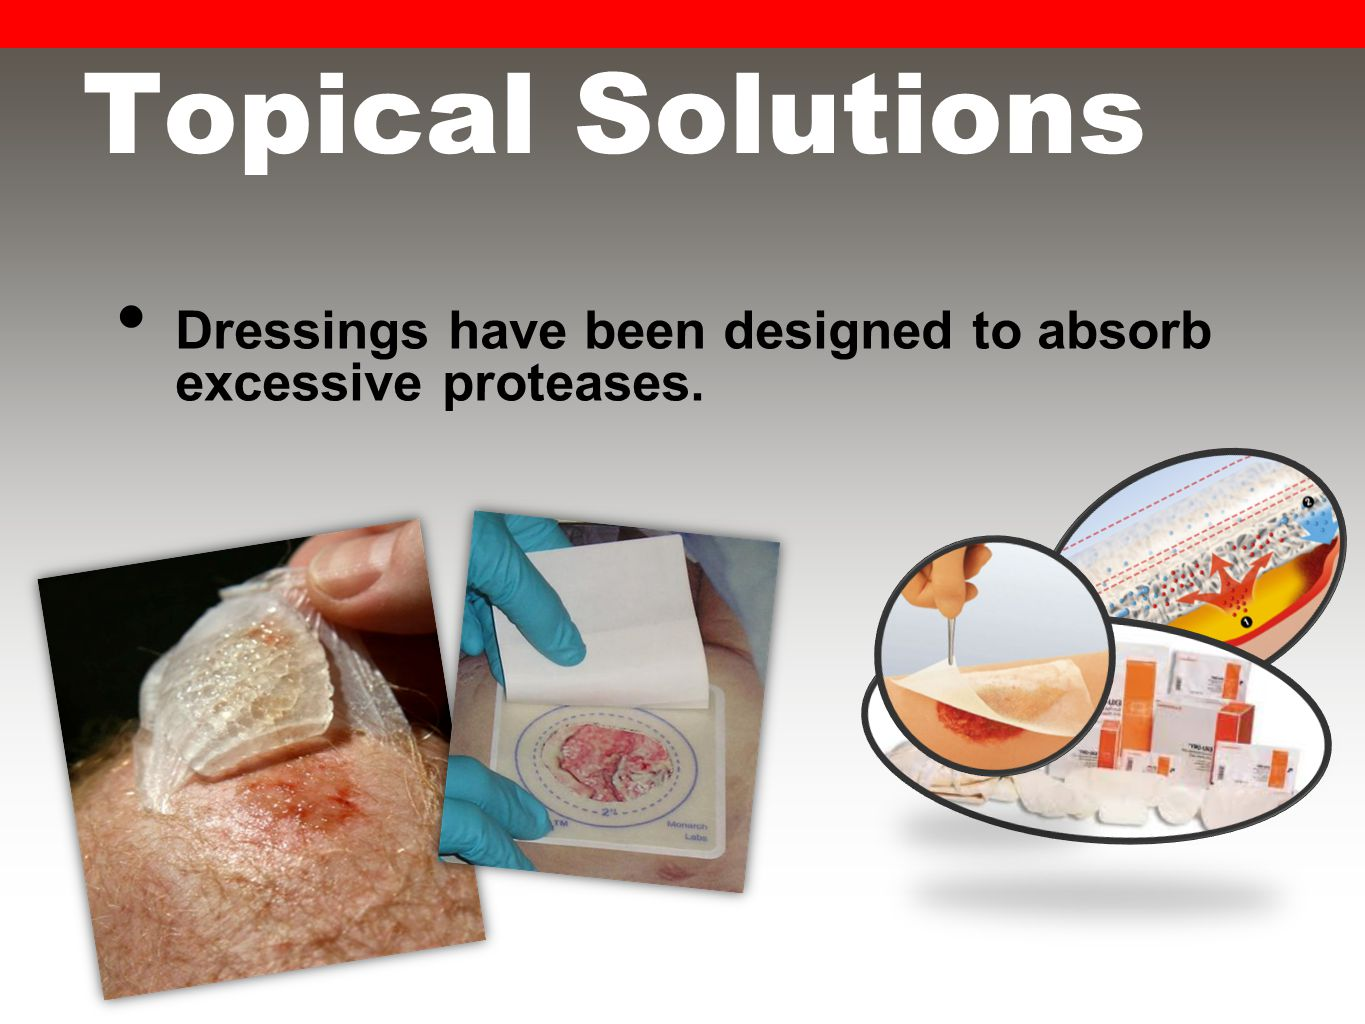 Topical Solutions Dressings have been designed to absorb excessive proteases.